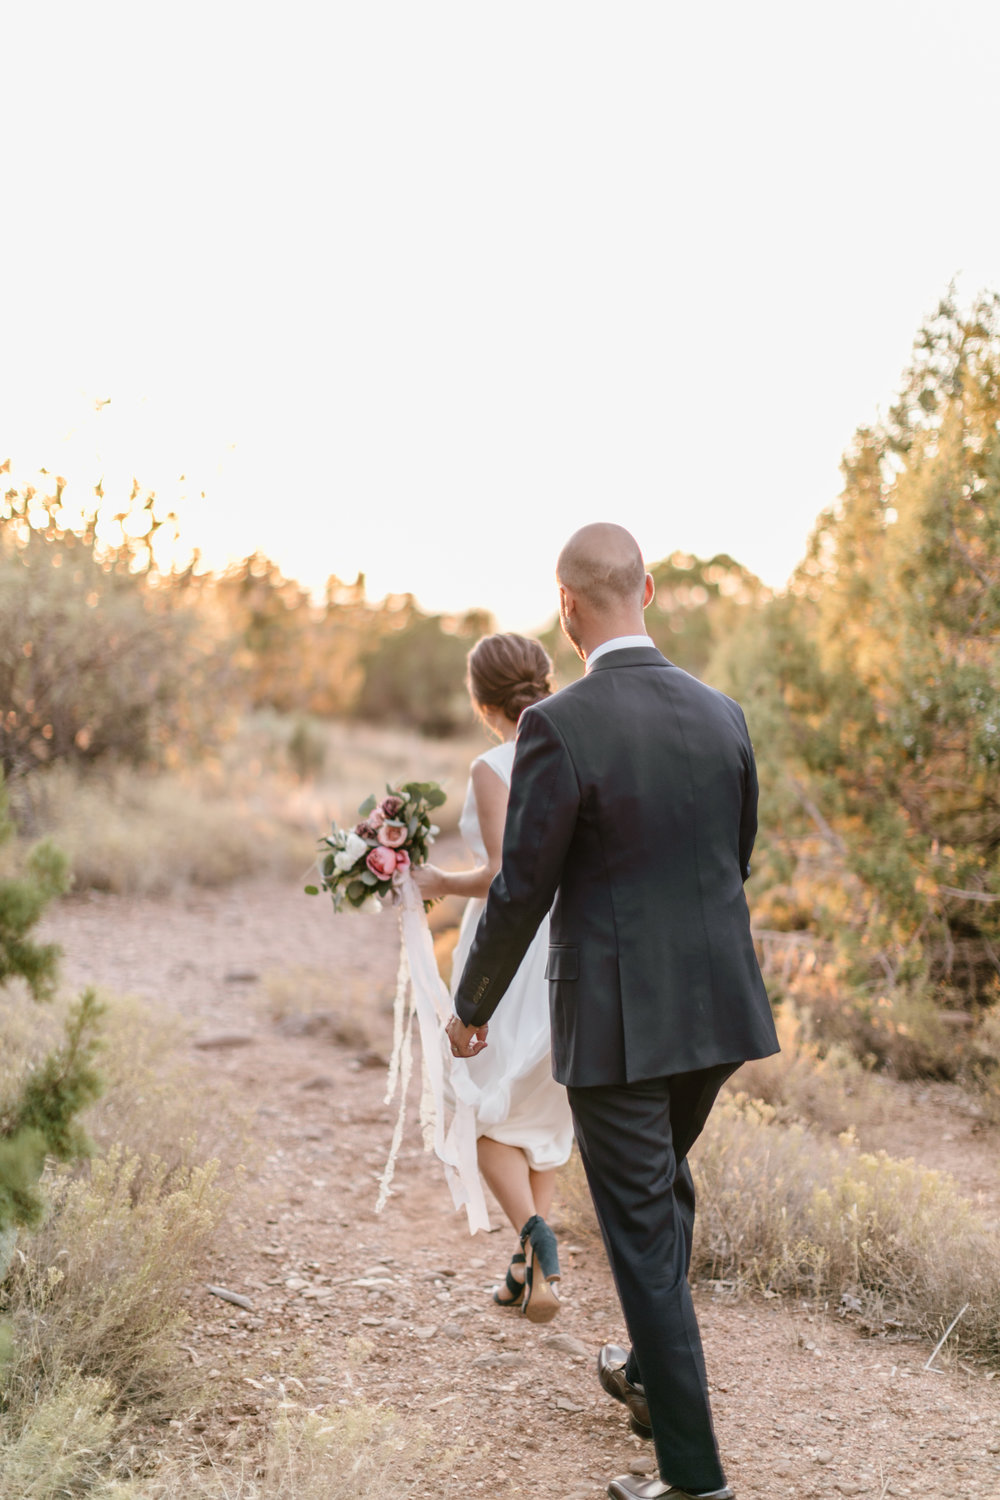 An Intimate Sedona Wedding Nestled in the Arizona Red Rocks  - Tremaine Ranch - AZ Arizona Wedding & Event, Vintage, Furniture, Tableware, & Specialty Rentals in Phoenix, Tucson, Flagstaff, Sedona, Tempe, Chandler, Mesa, Gilbert, Prescott, Payson 5172.jpg